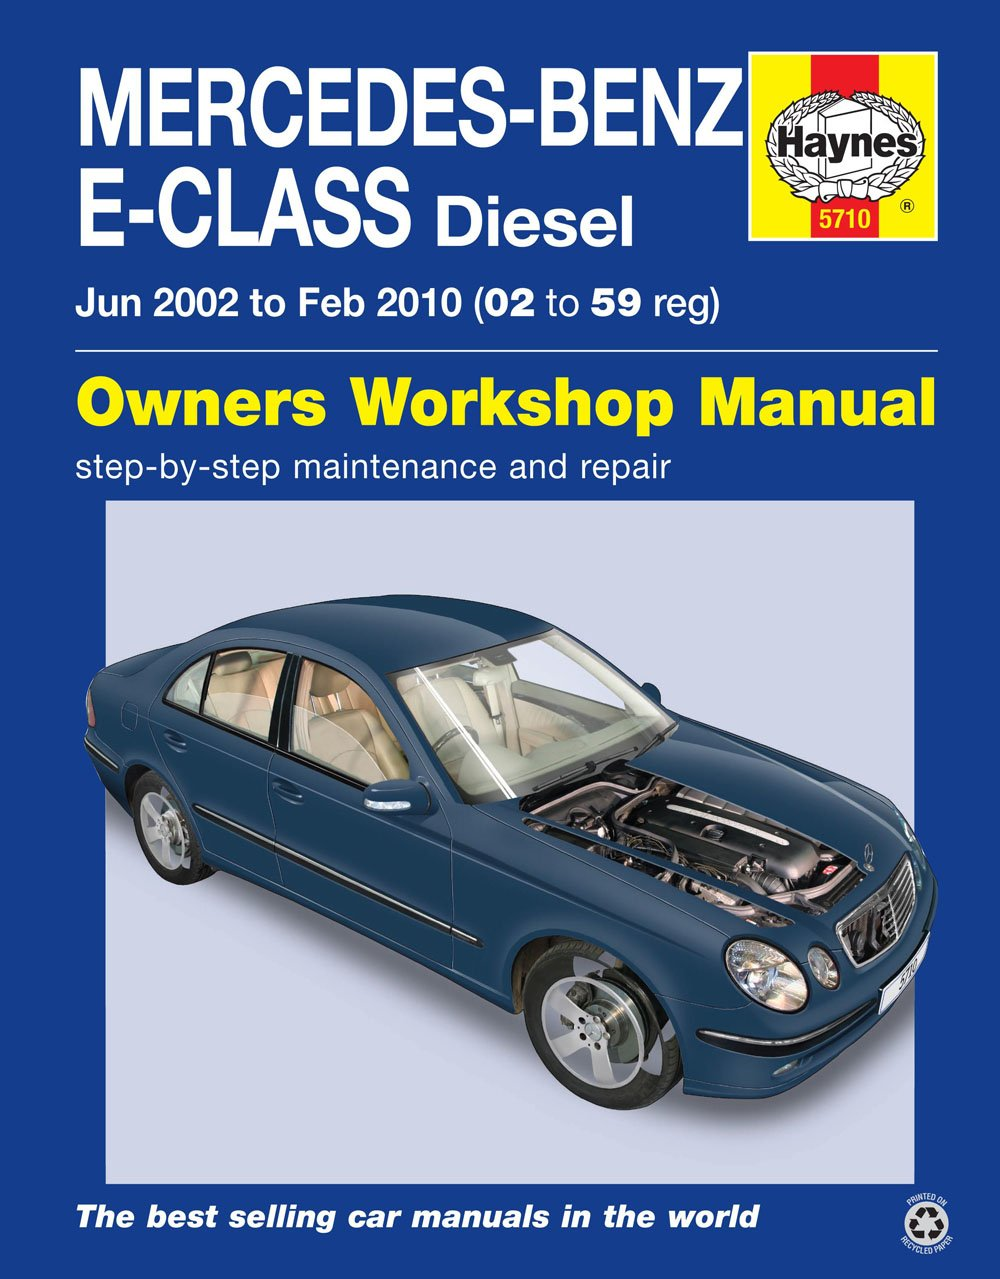 Mercedes-Benz E-class 02 - 59 Diesel (Haynes Owners Workshop Manual)